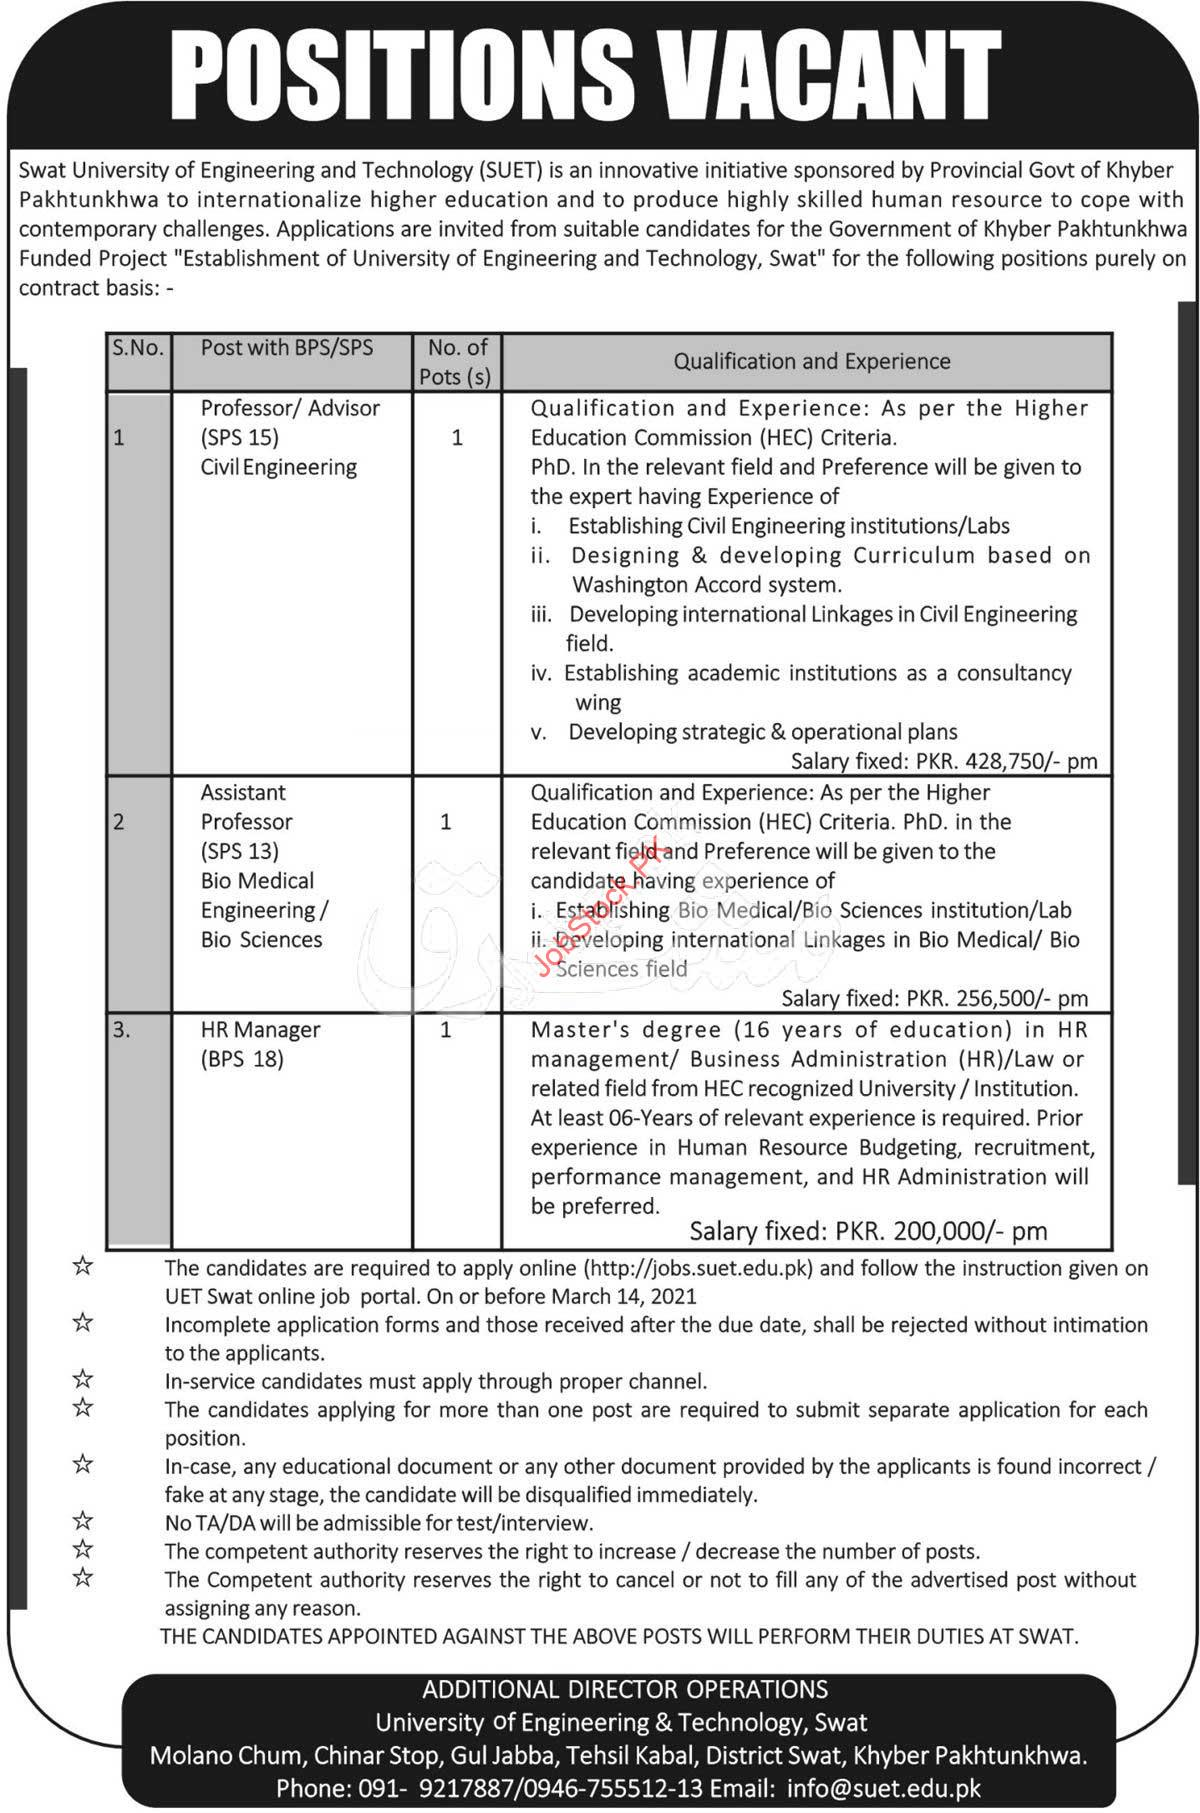 Swat University Of Engineering And Technology Jobs 2021